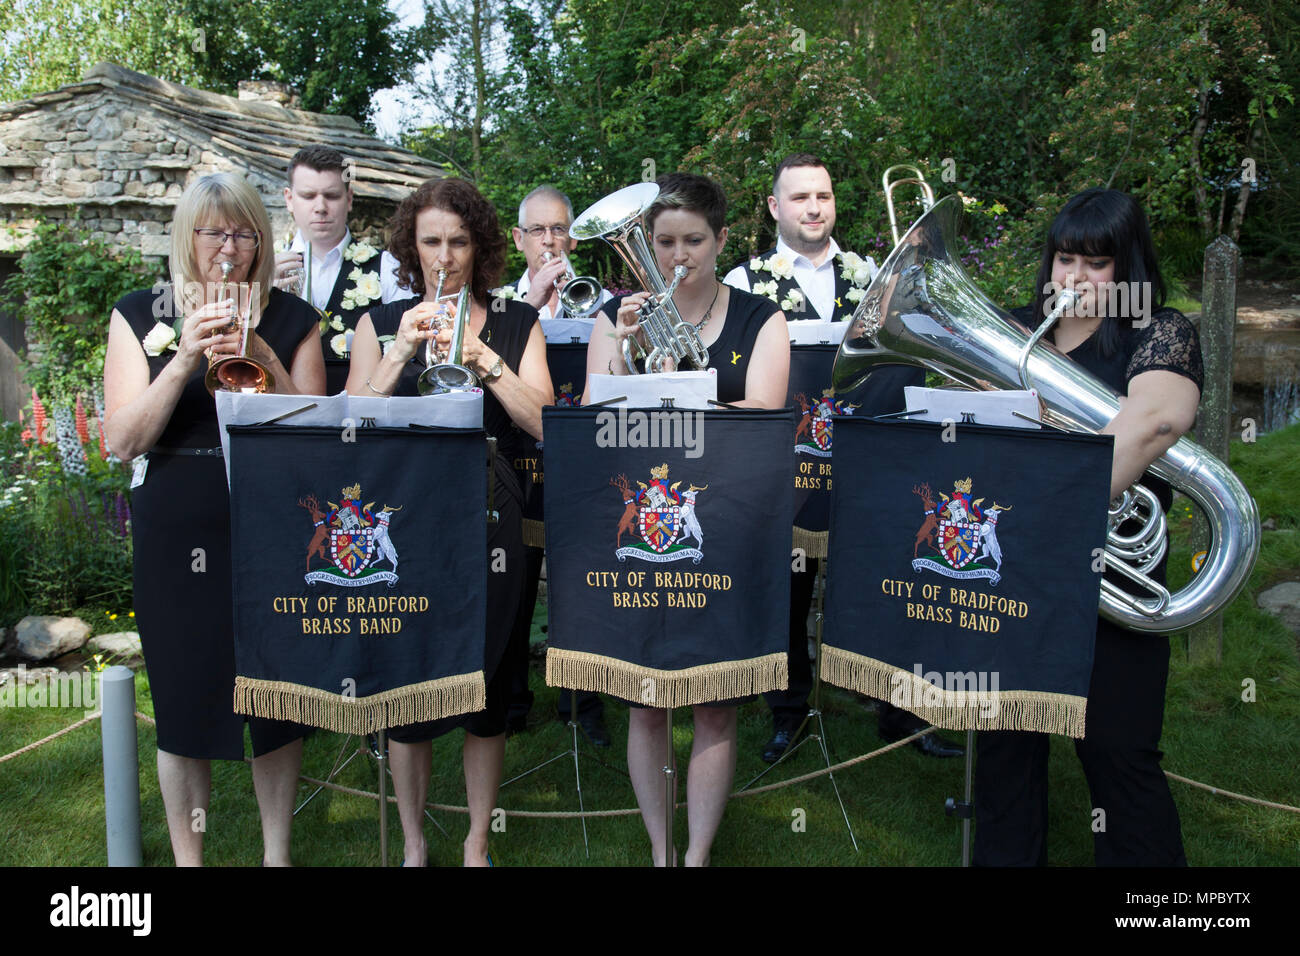 Chelsea, London, UK. 21st May, 2018. City of Bradford Brass Band on the Welcome to Yorkshire garden at Chelsea Flower Show 2018, designed by Mark Gregory for Landformconsultants.co.uk Credit: Jenny Lilly/Alamy Live News - Stock Image